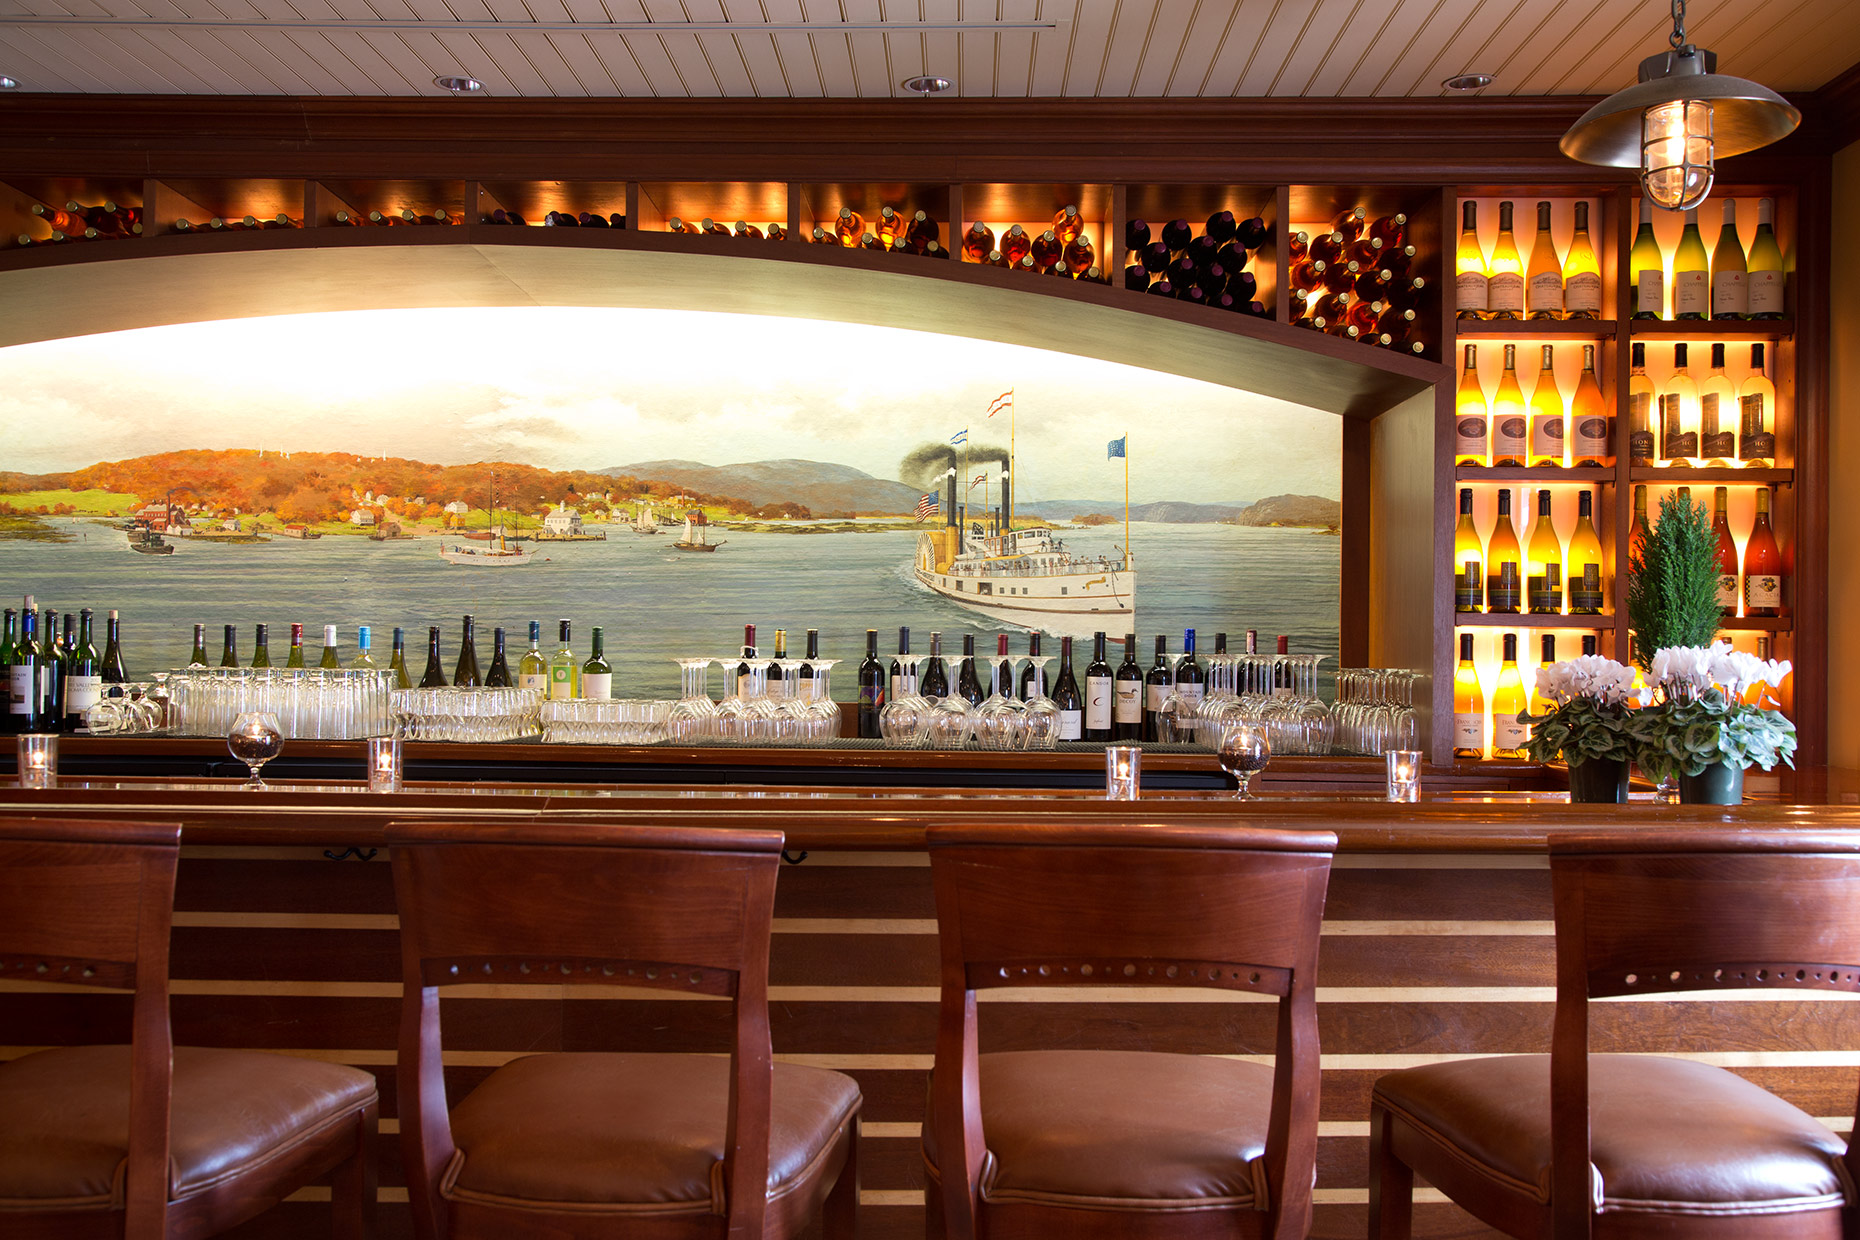 Griswold-Inn-Wine-Bar-Essex-Connecticut-Caryn-B-Davis